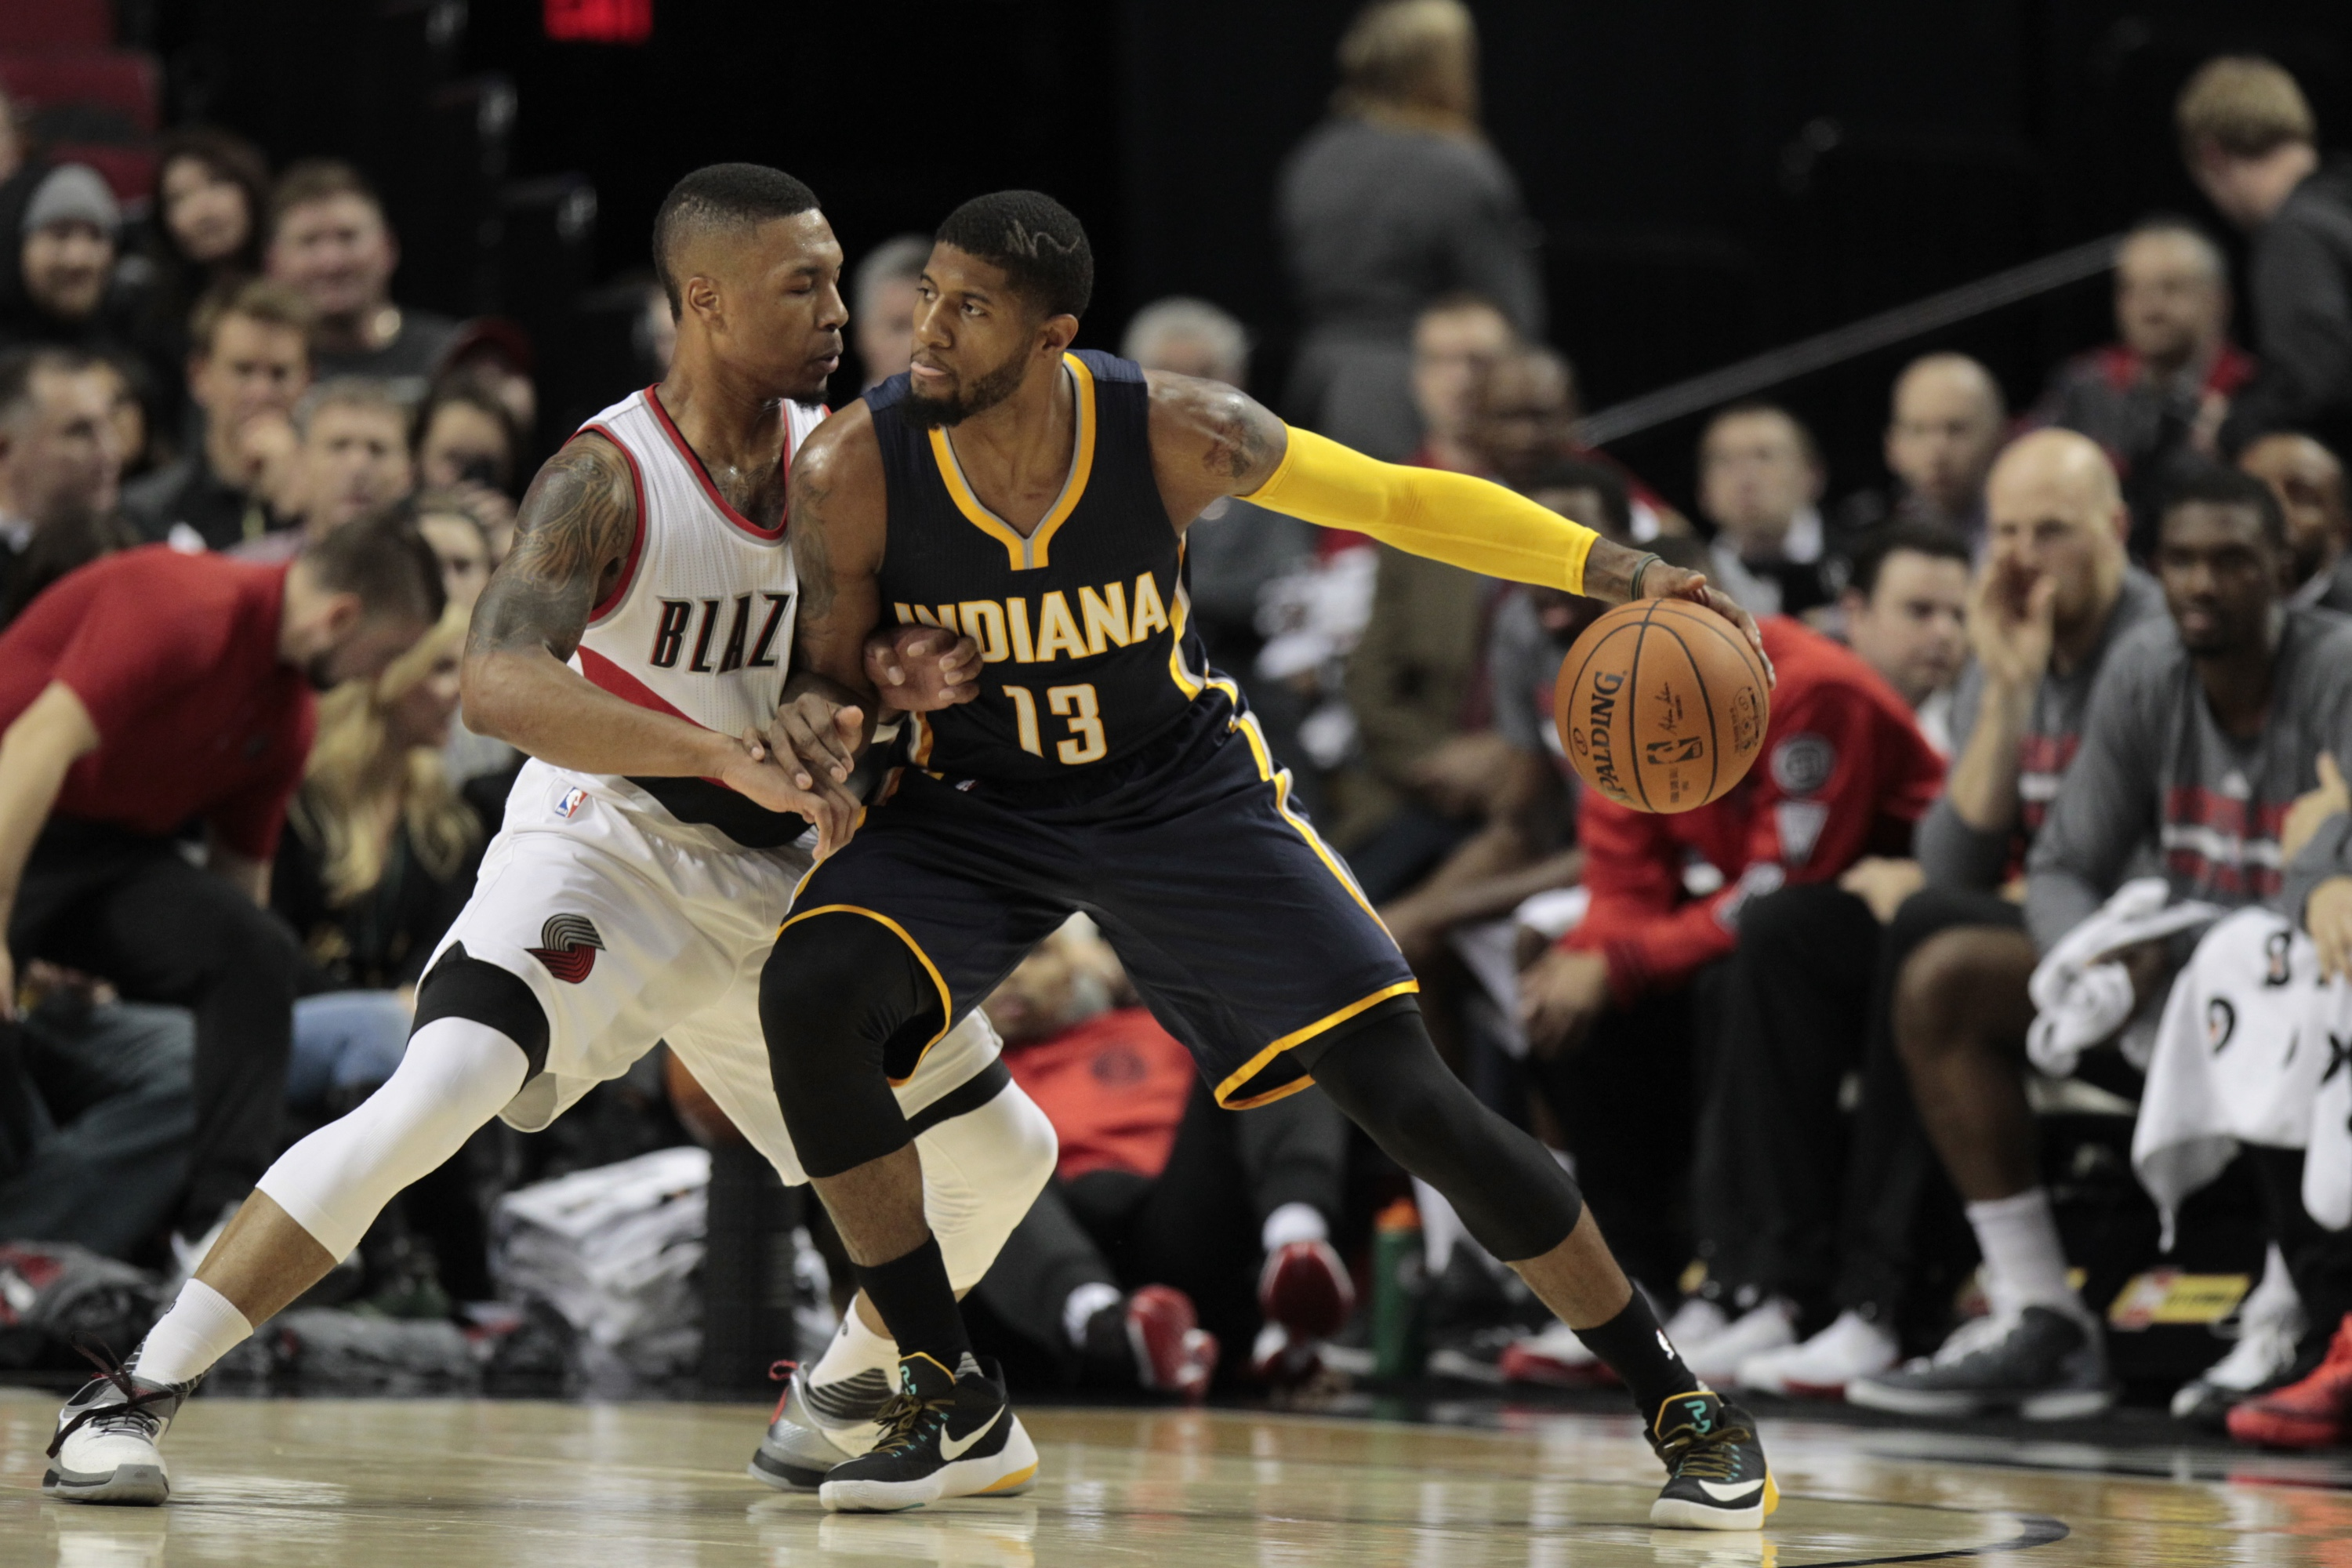 Indiana Pacers forward Paul George (13) drives against Portland Trail Blazers guard Damian Lillard during the first half of an NBA basketball game in Portland, Ore., Thursday, Dec. 3, 2015. (AP Photo/Steve Dipaola)